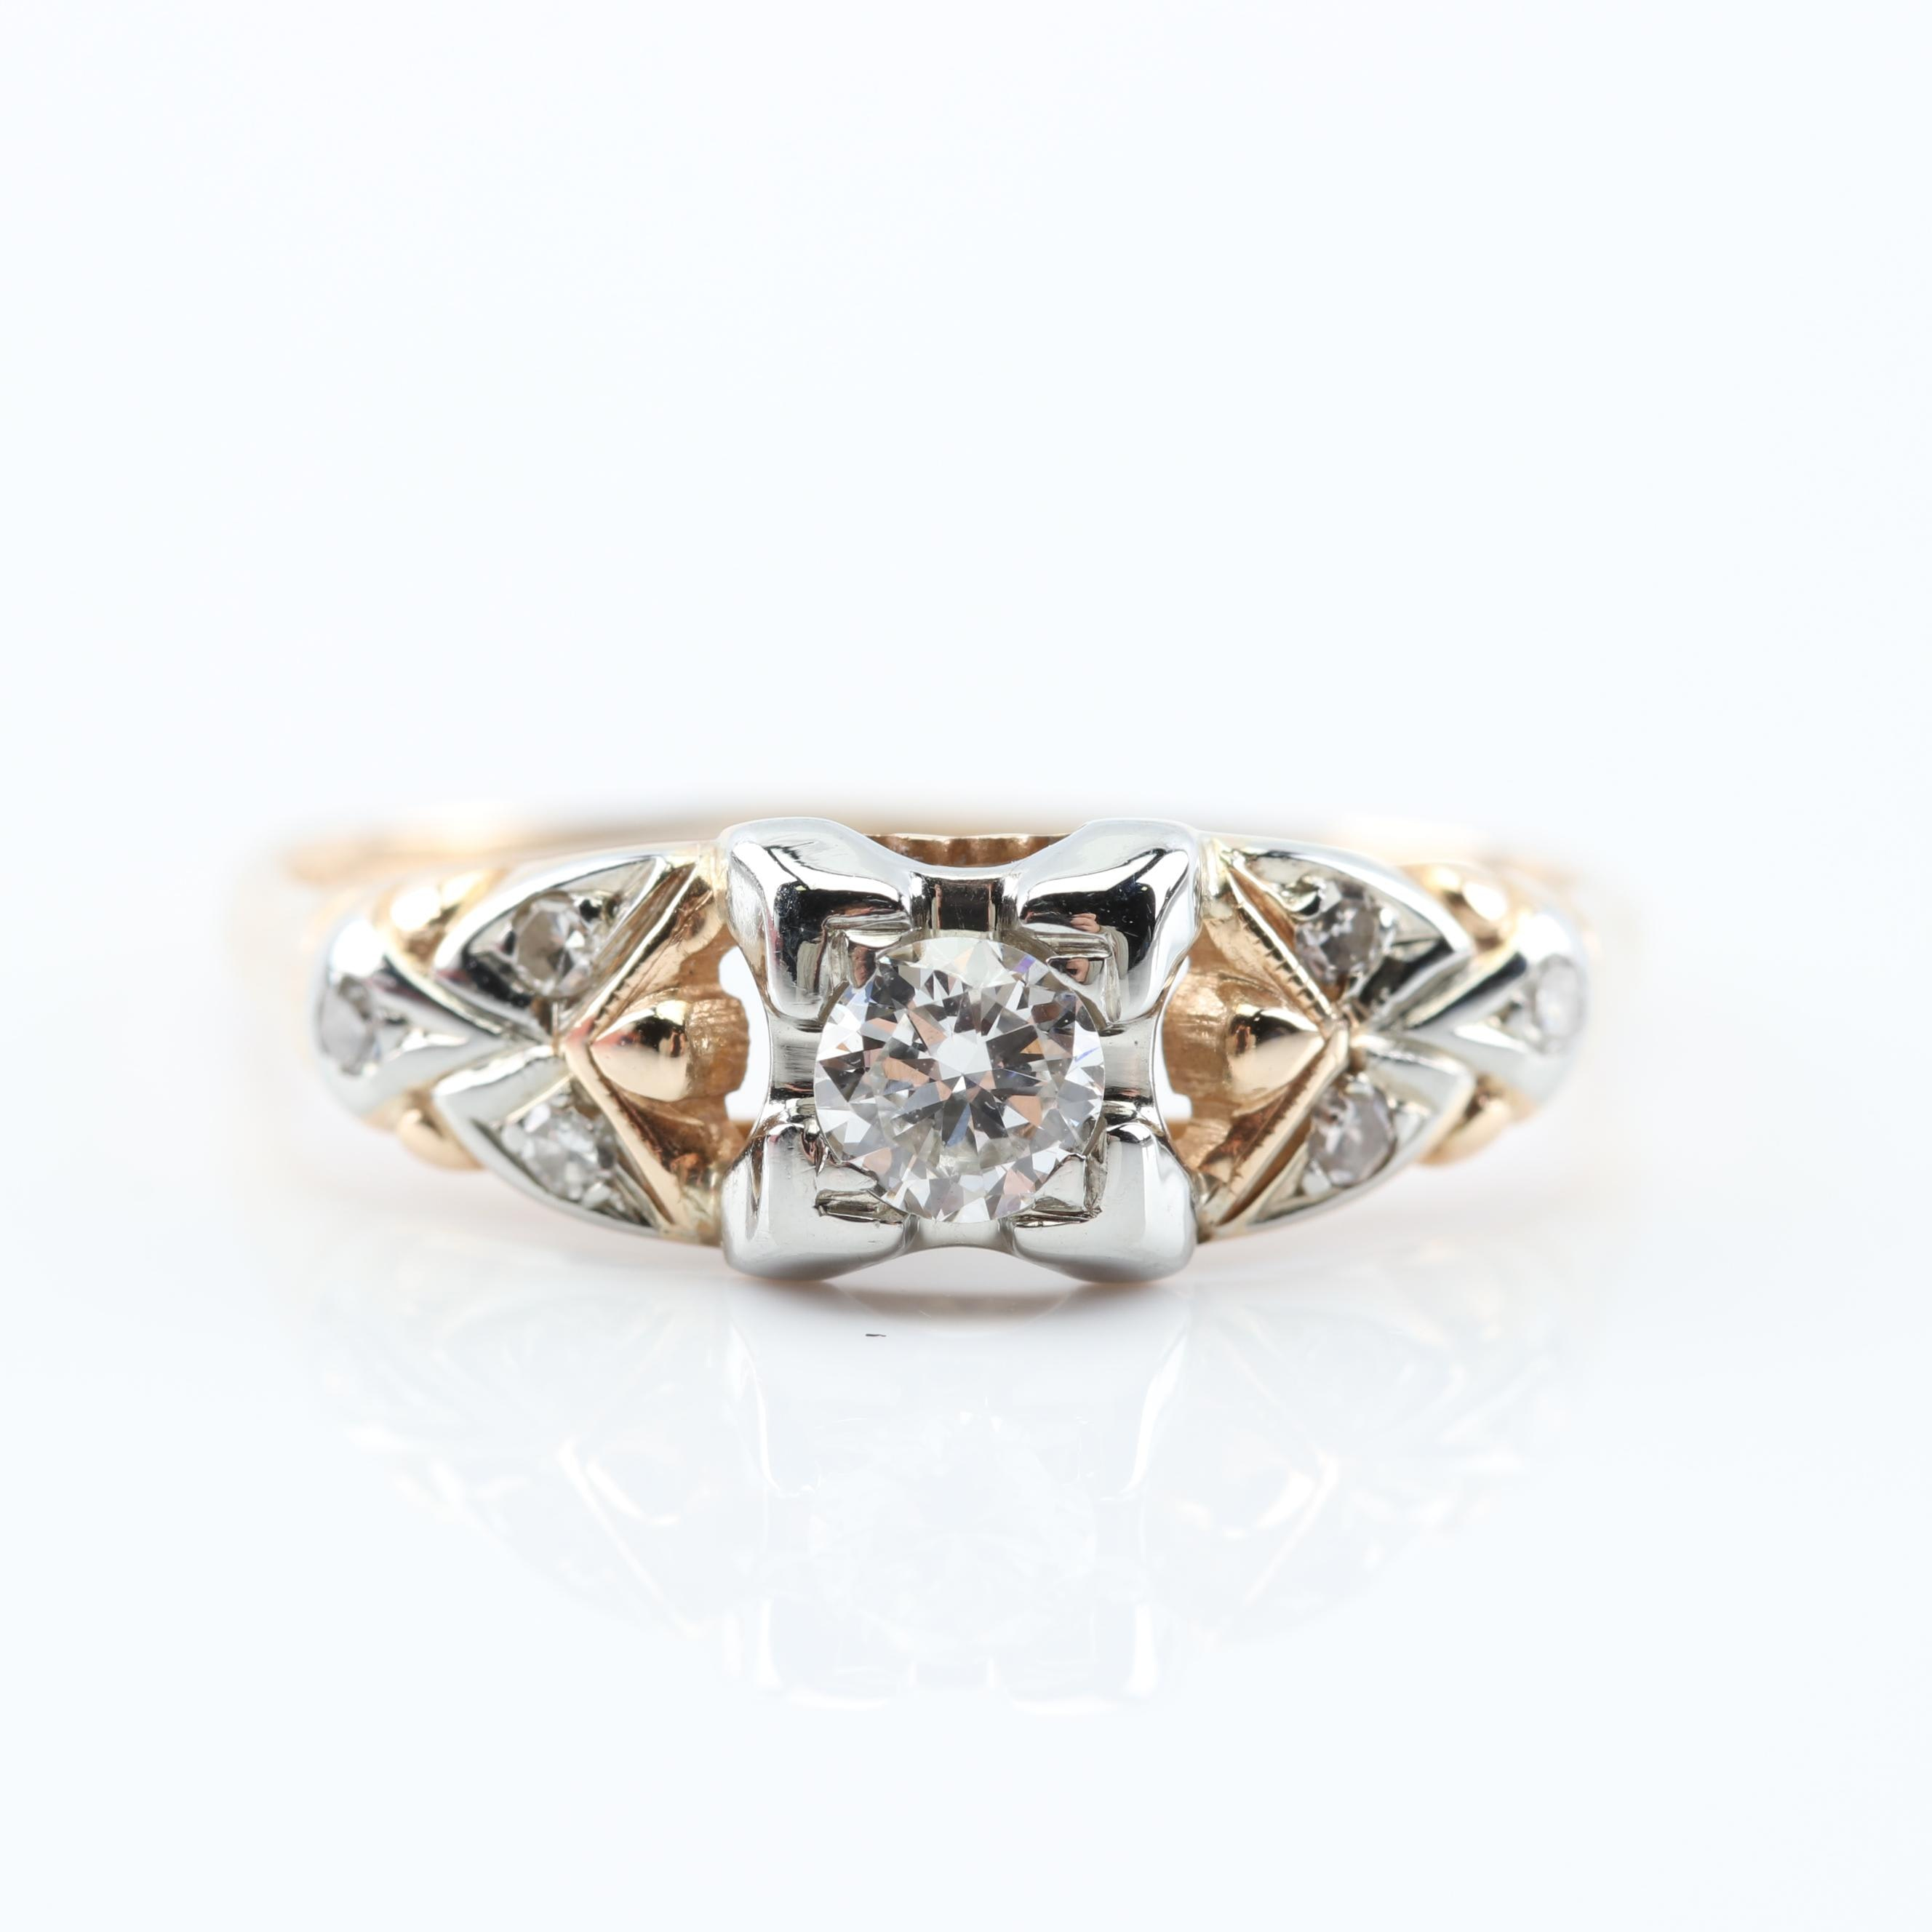 14K and 18K Yellow Gold Diamond Ring